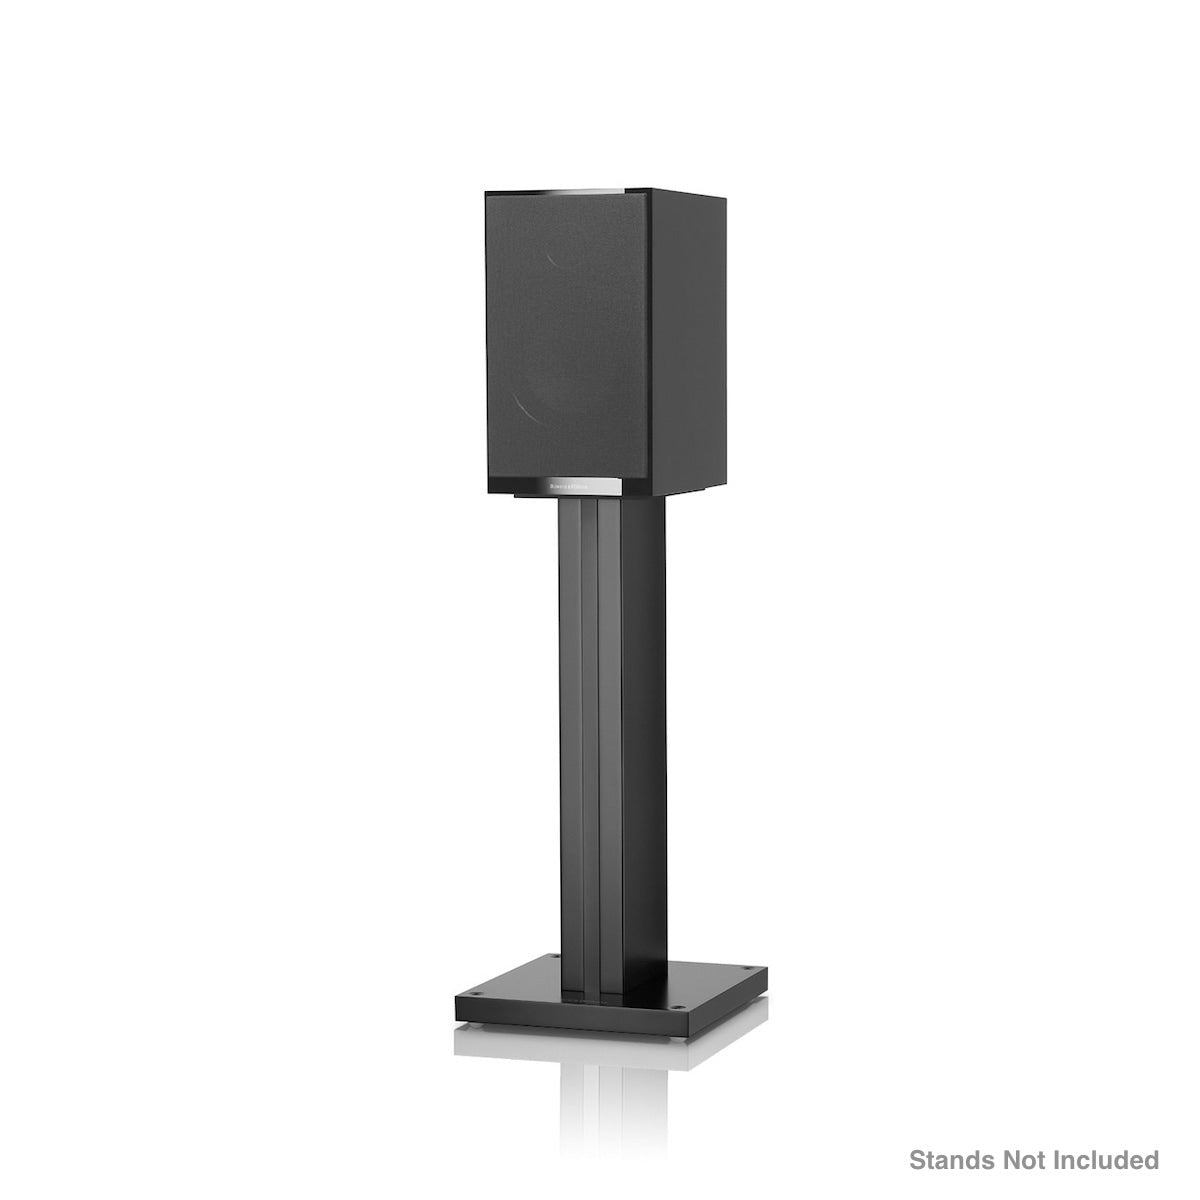 Bowers & Wilkins 706 S2 - Bookshelf Speaker - Pair